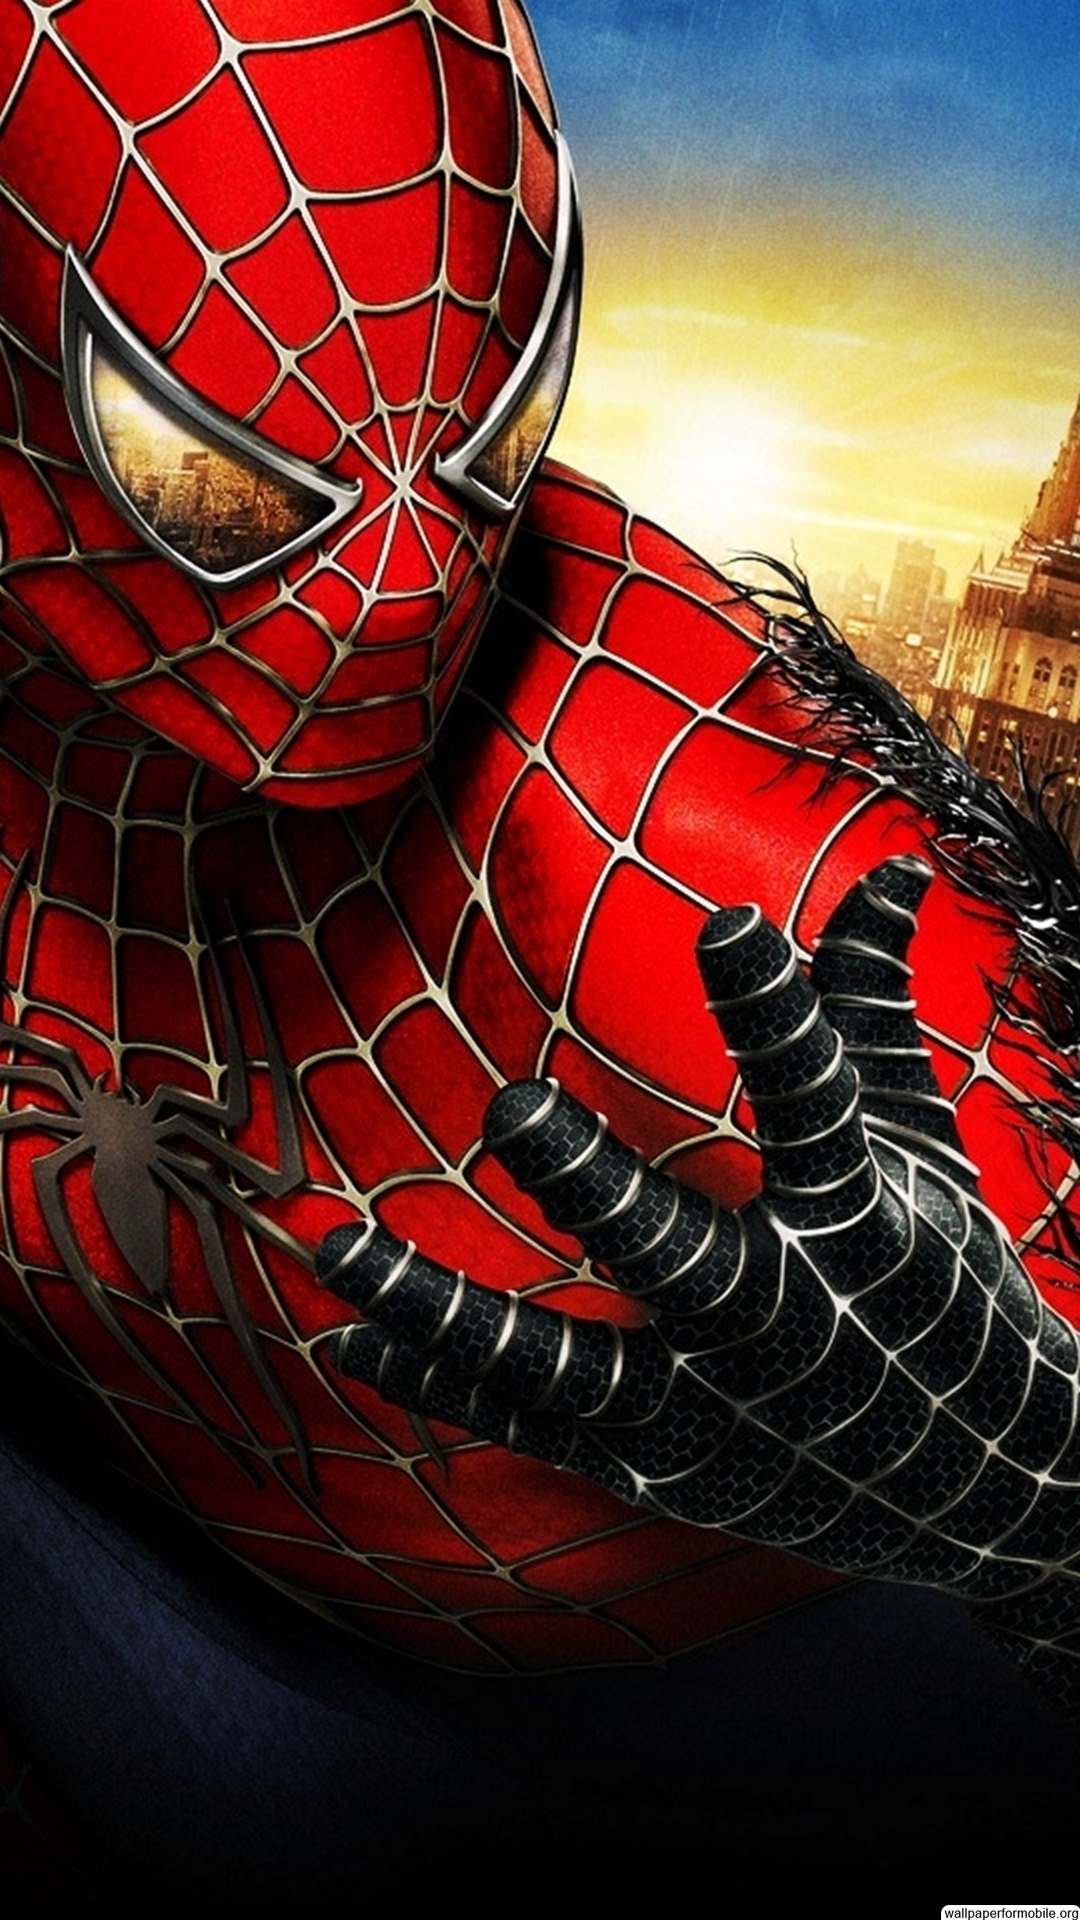 Download Spiderman HD Wallpapers For Mobile Gallery